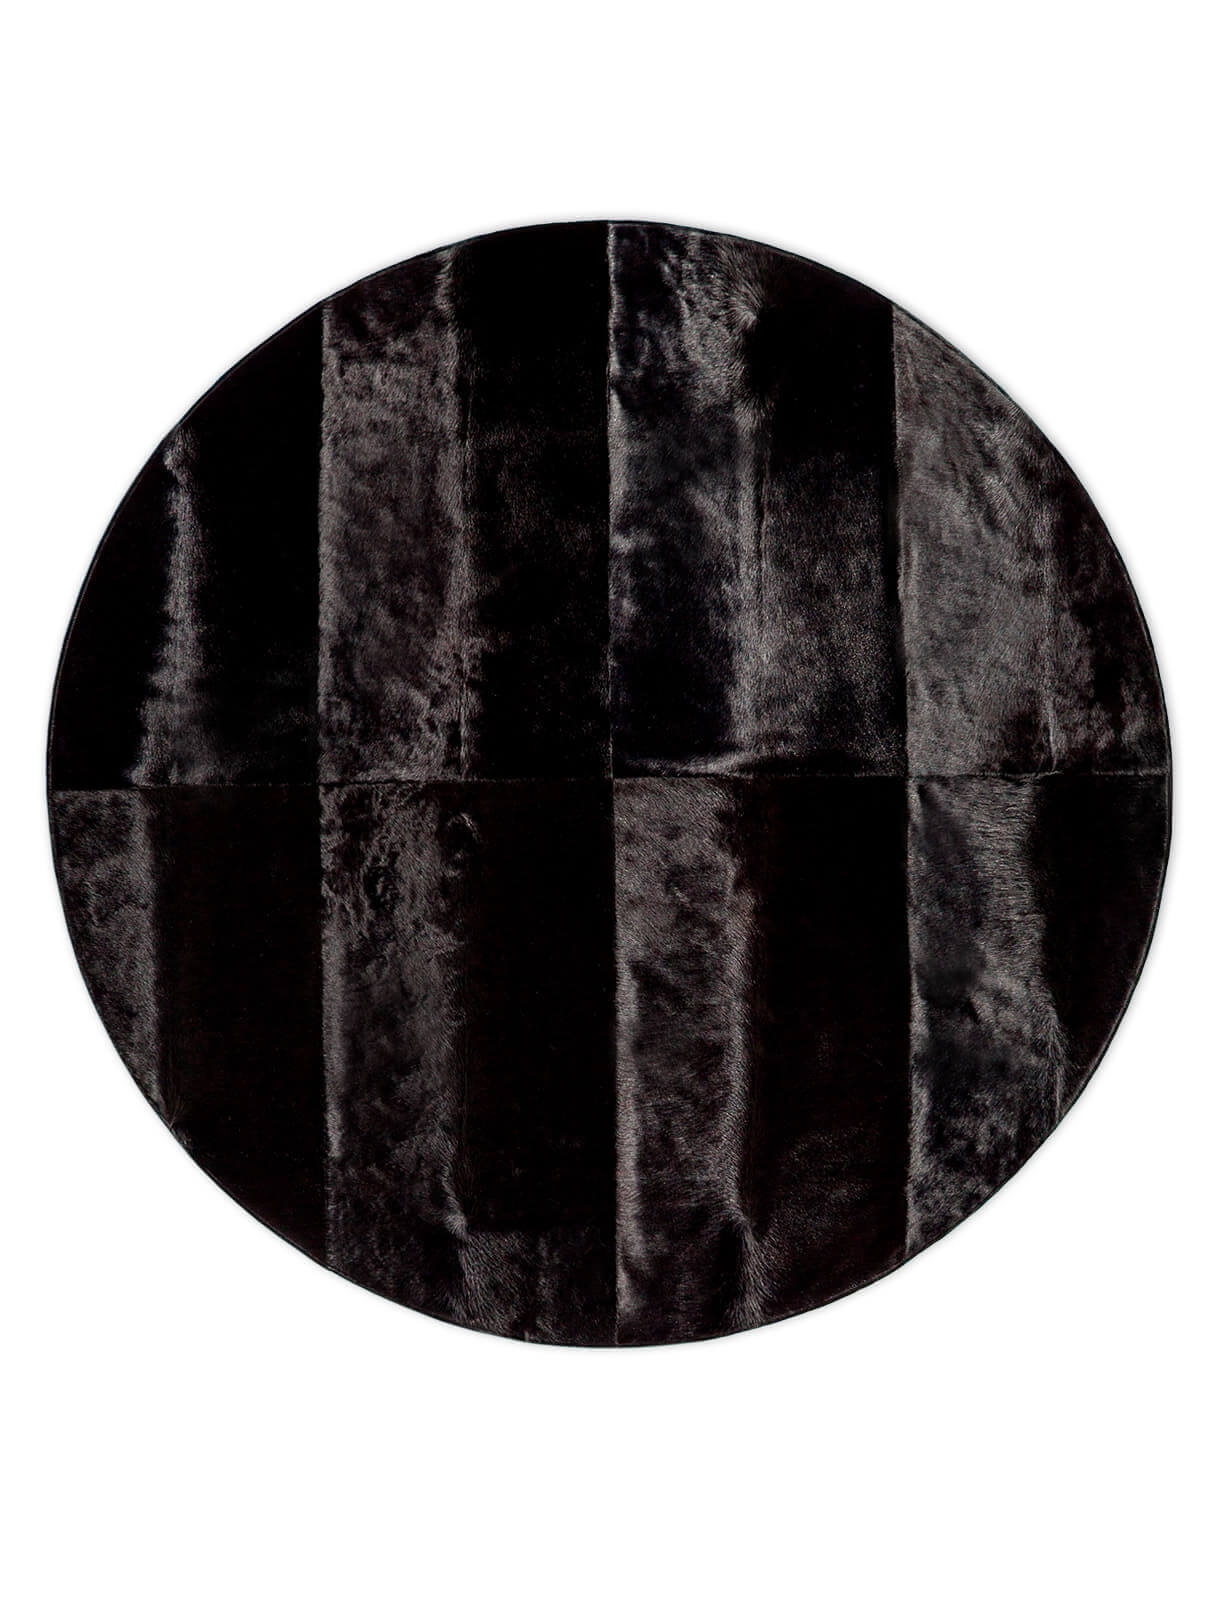 OAK ROUND  shown in Black